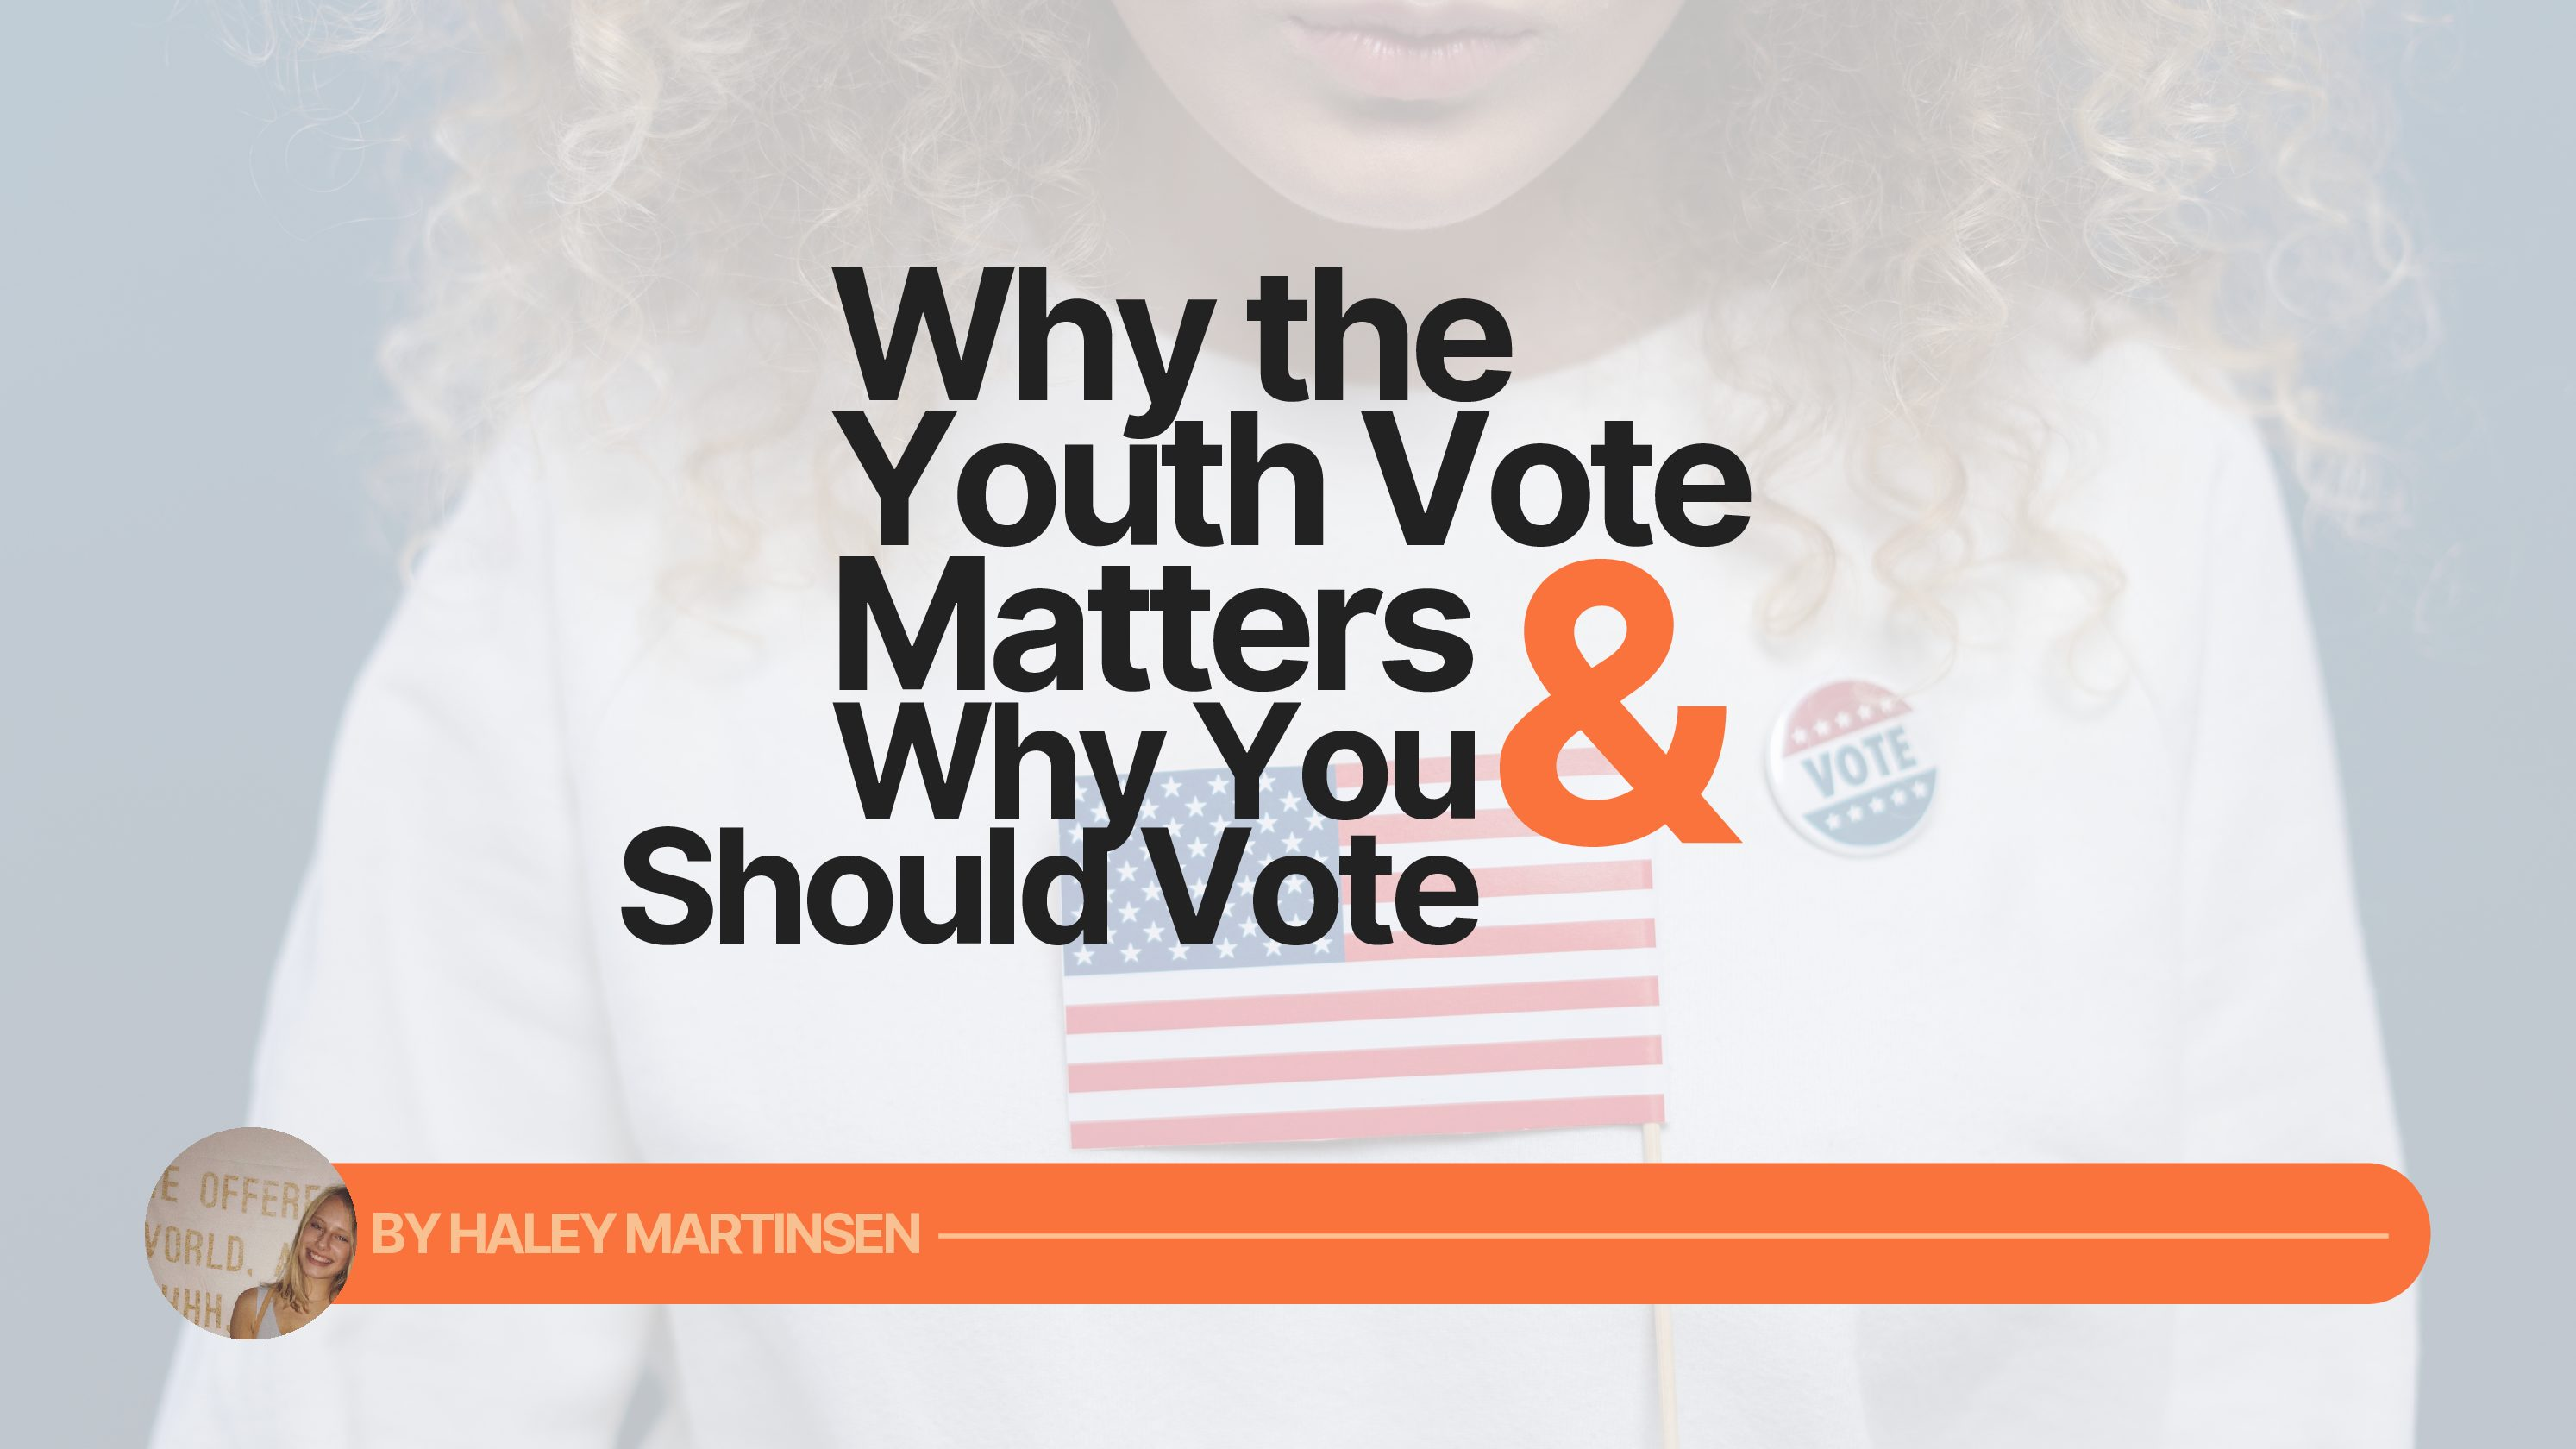 Why the Youth Vote Matters (and Why You Should Vote)